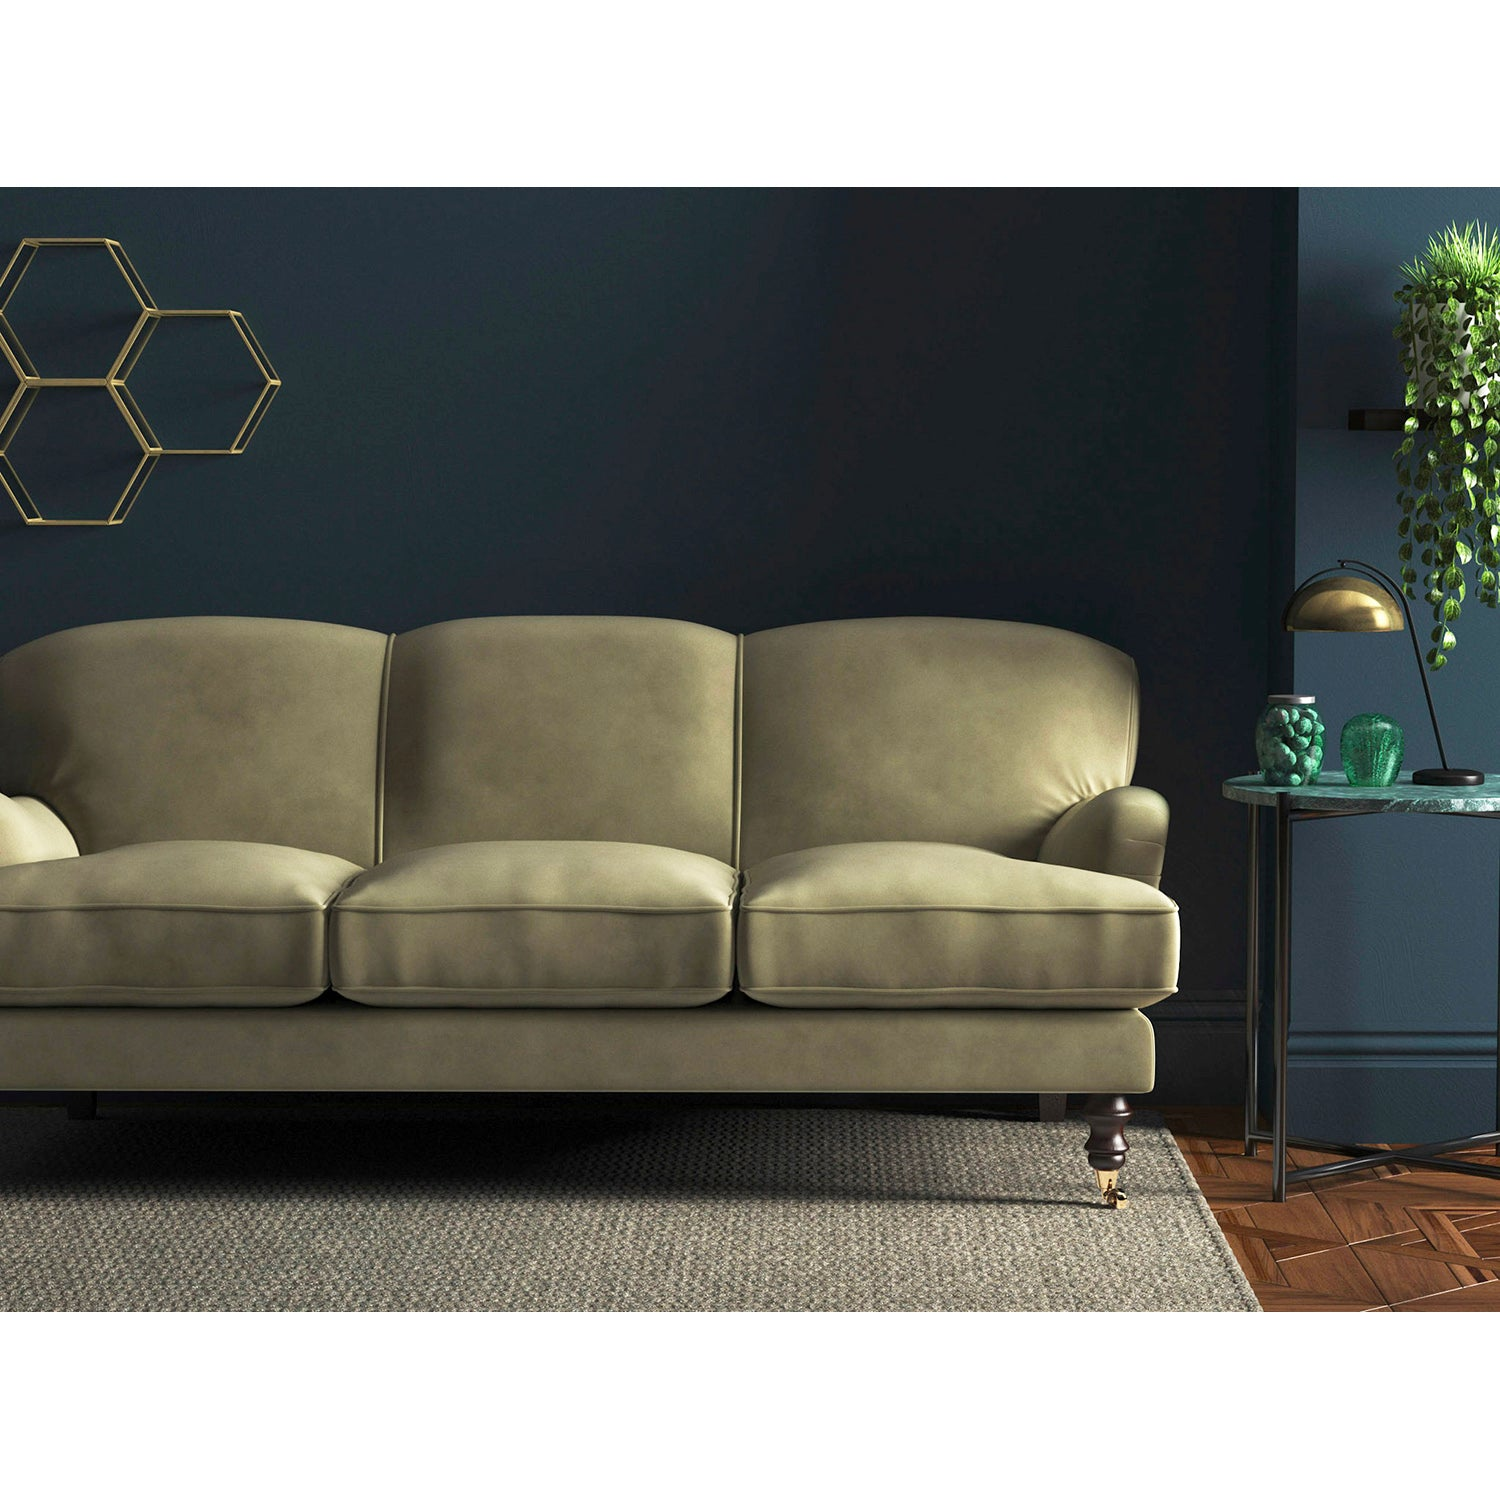 Sofa in a luxury neutral velvet upholstery fabric with a stain resistant finish